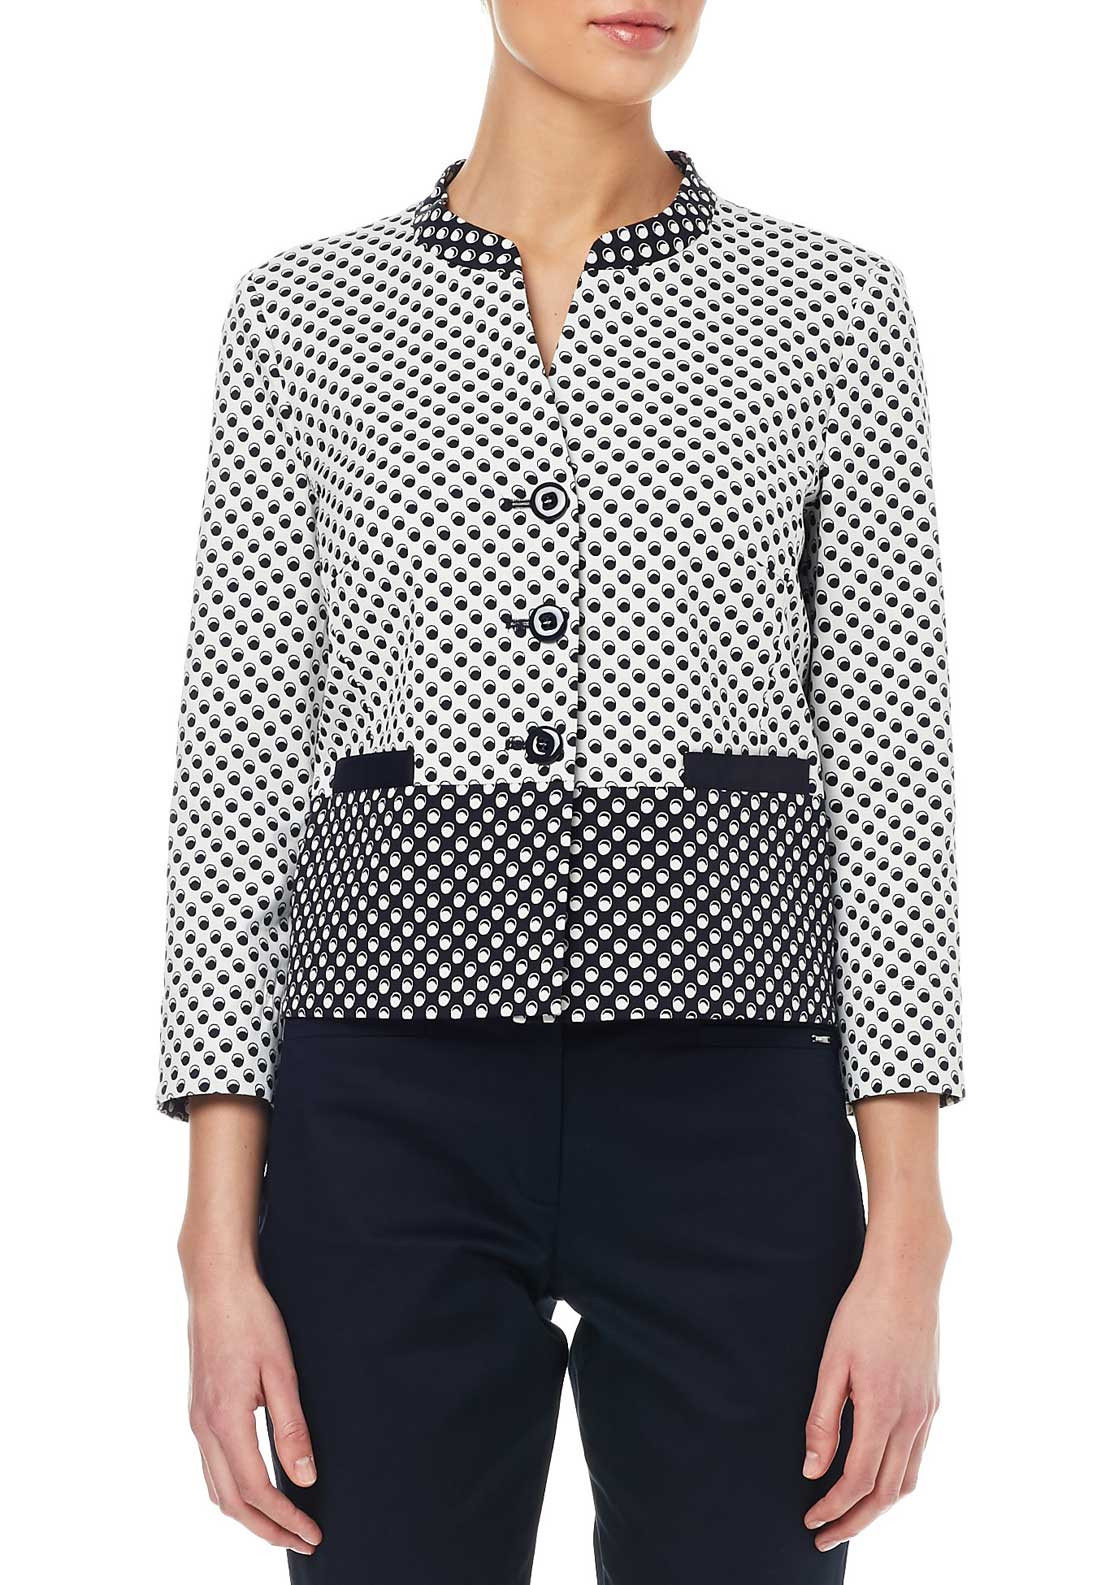 Gerry Weber Circle Print Jacket, Black & Cream